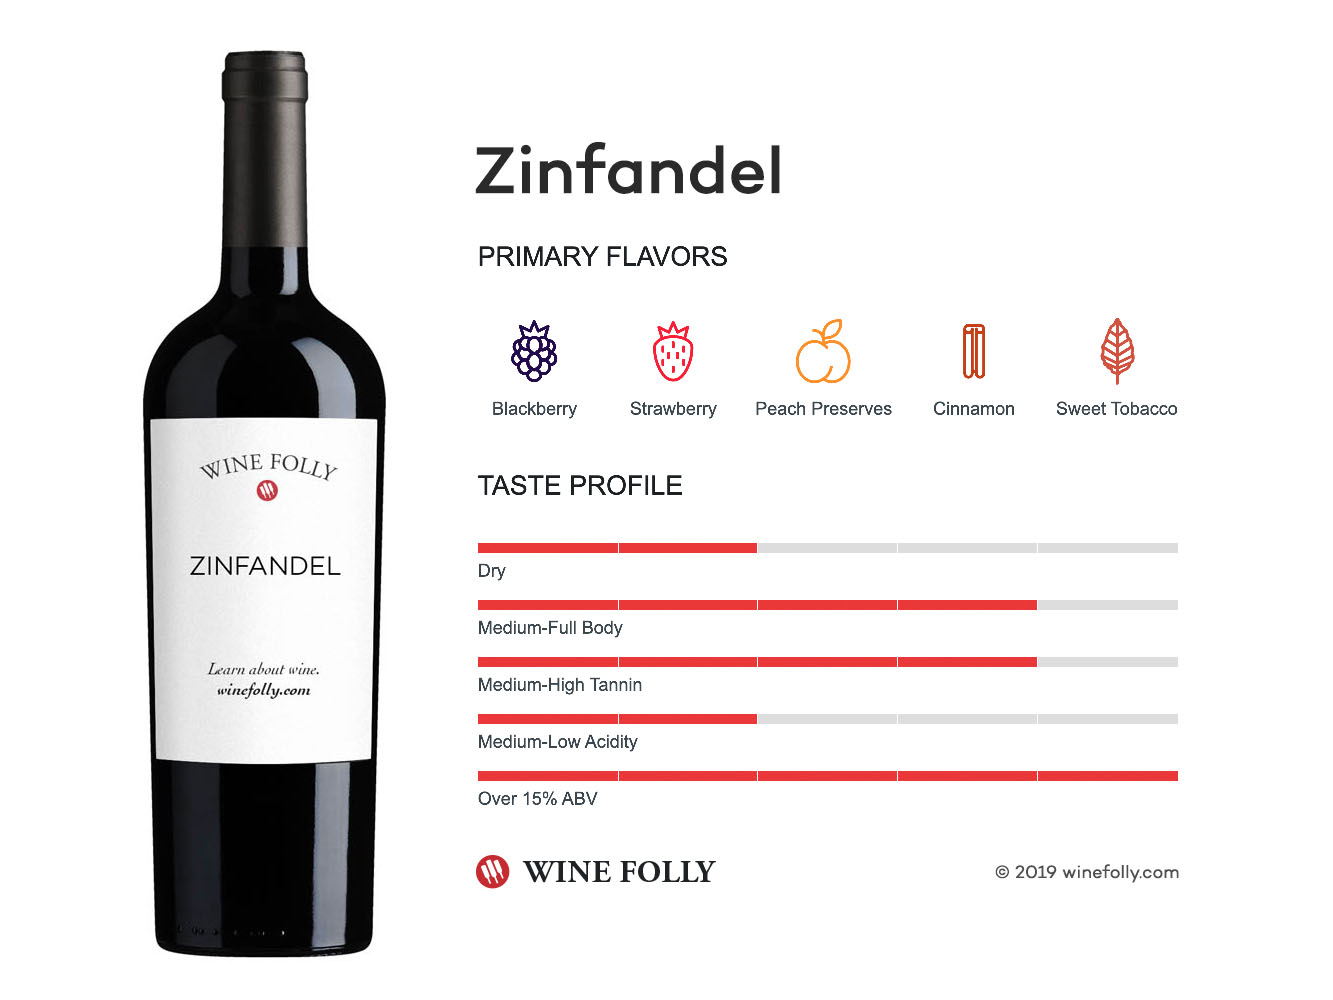 Image result for zinfandel wine folly